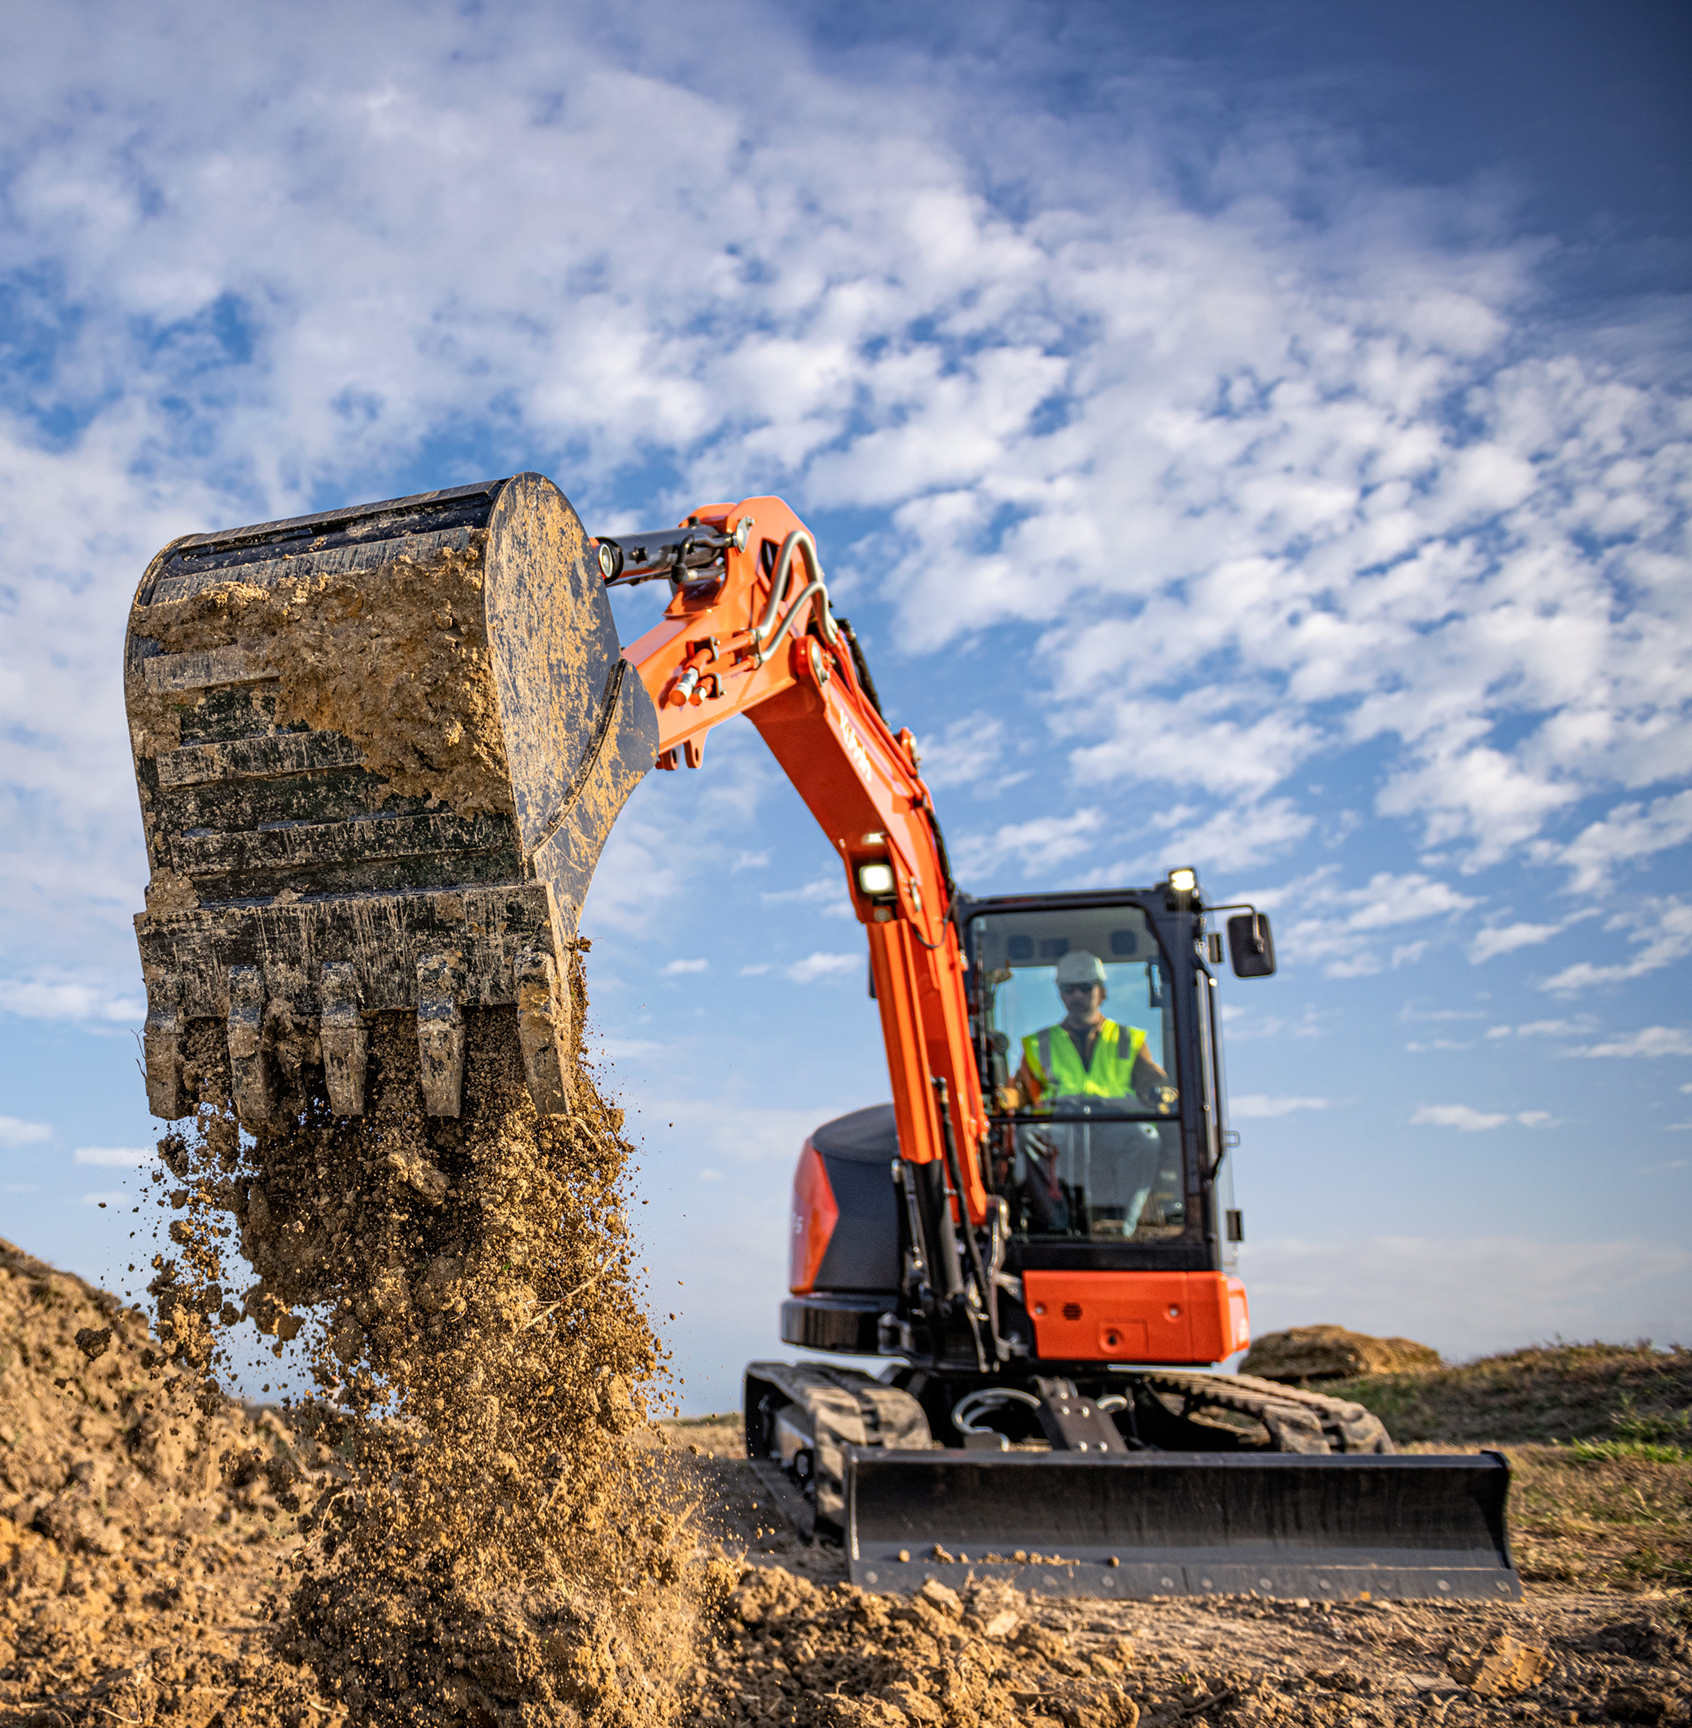 Kubota KX0575 Compact-Excavator with bucket